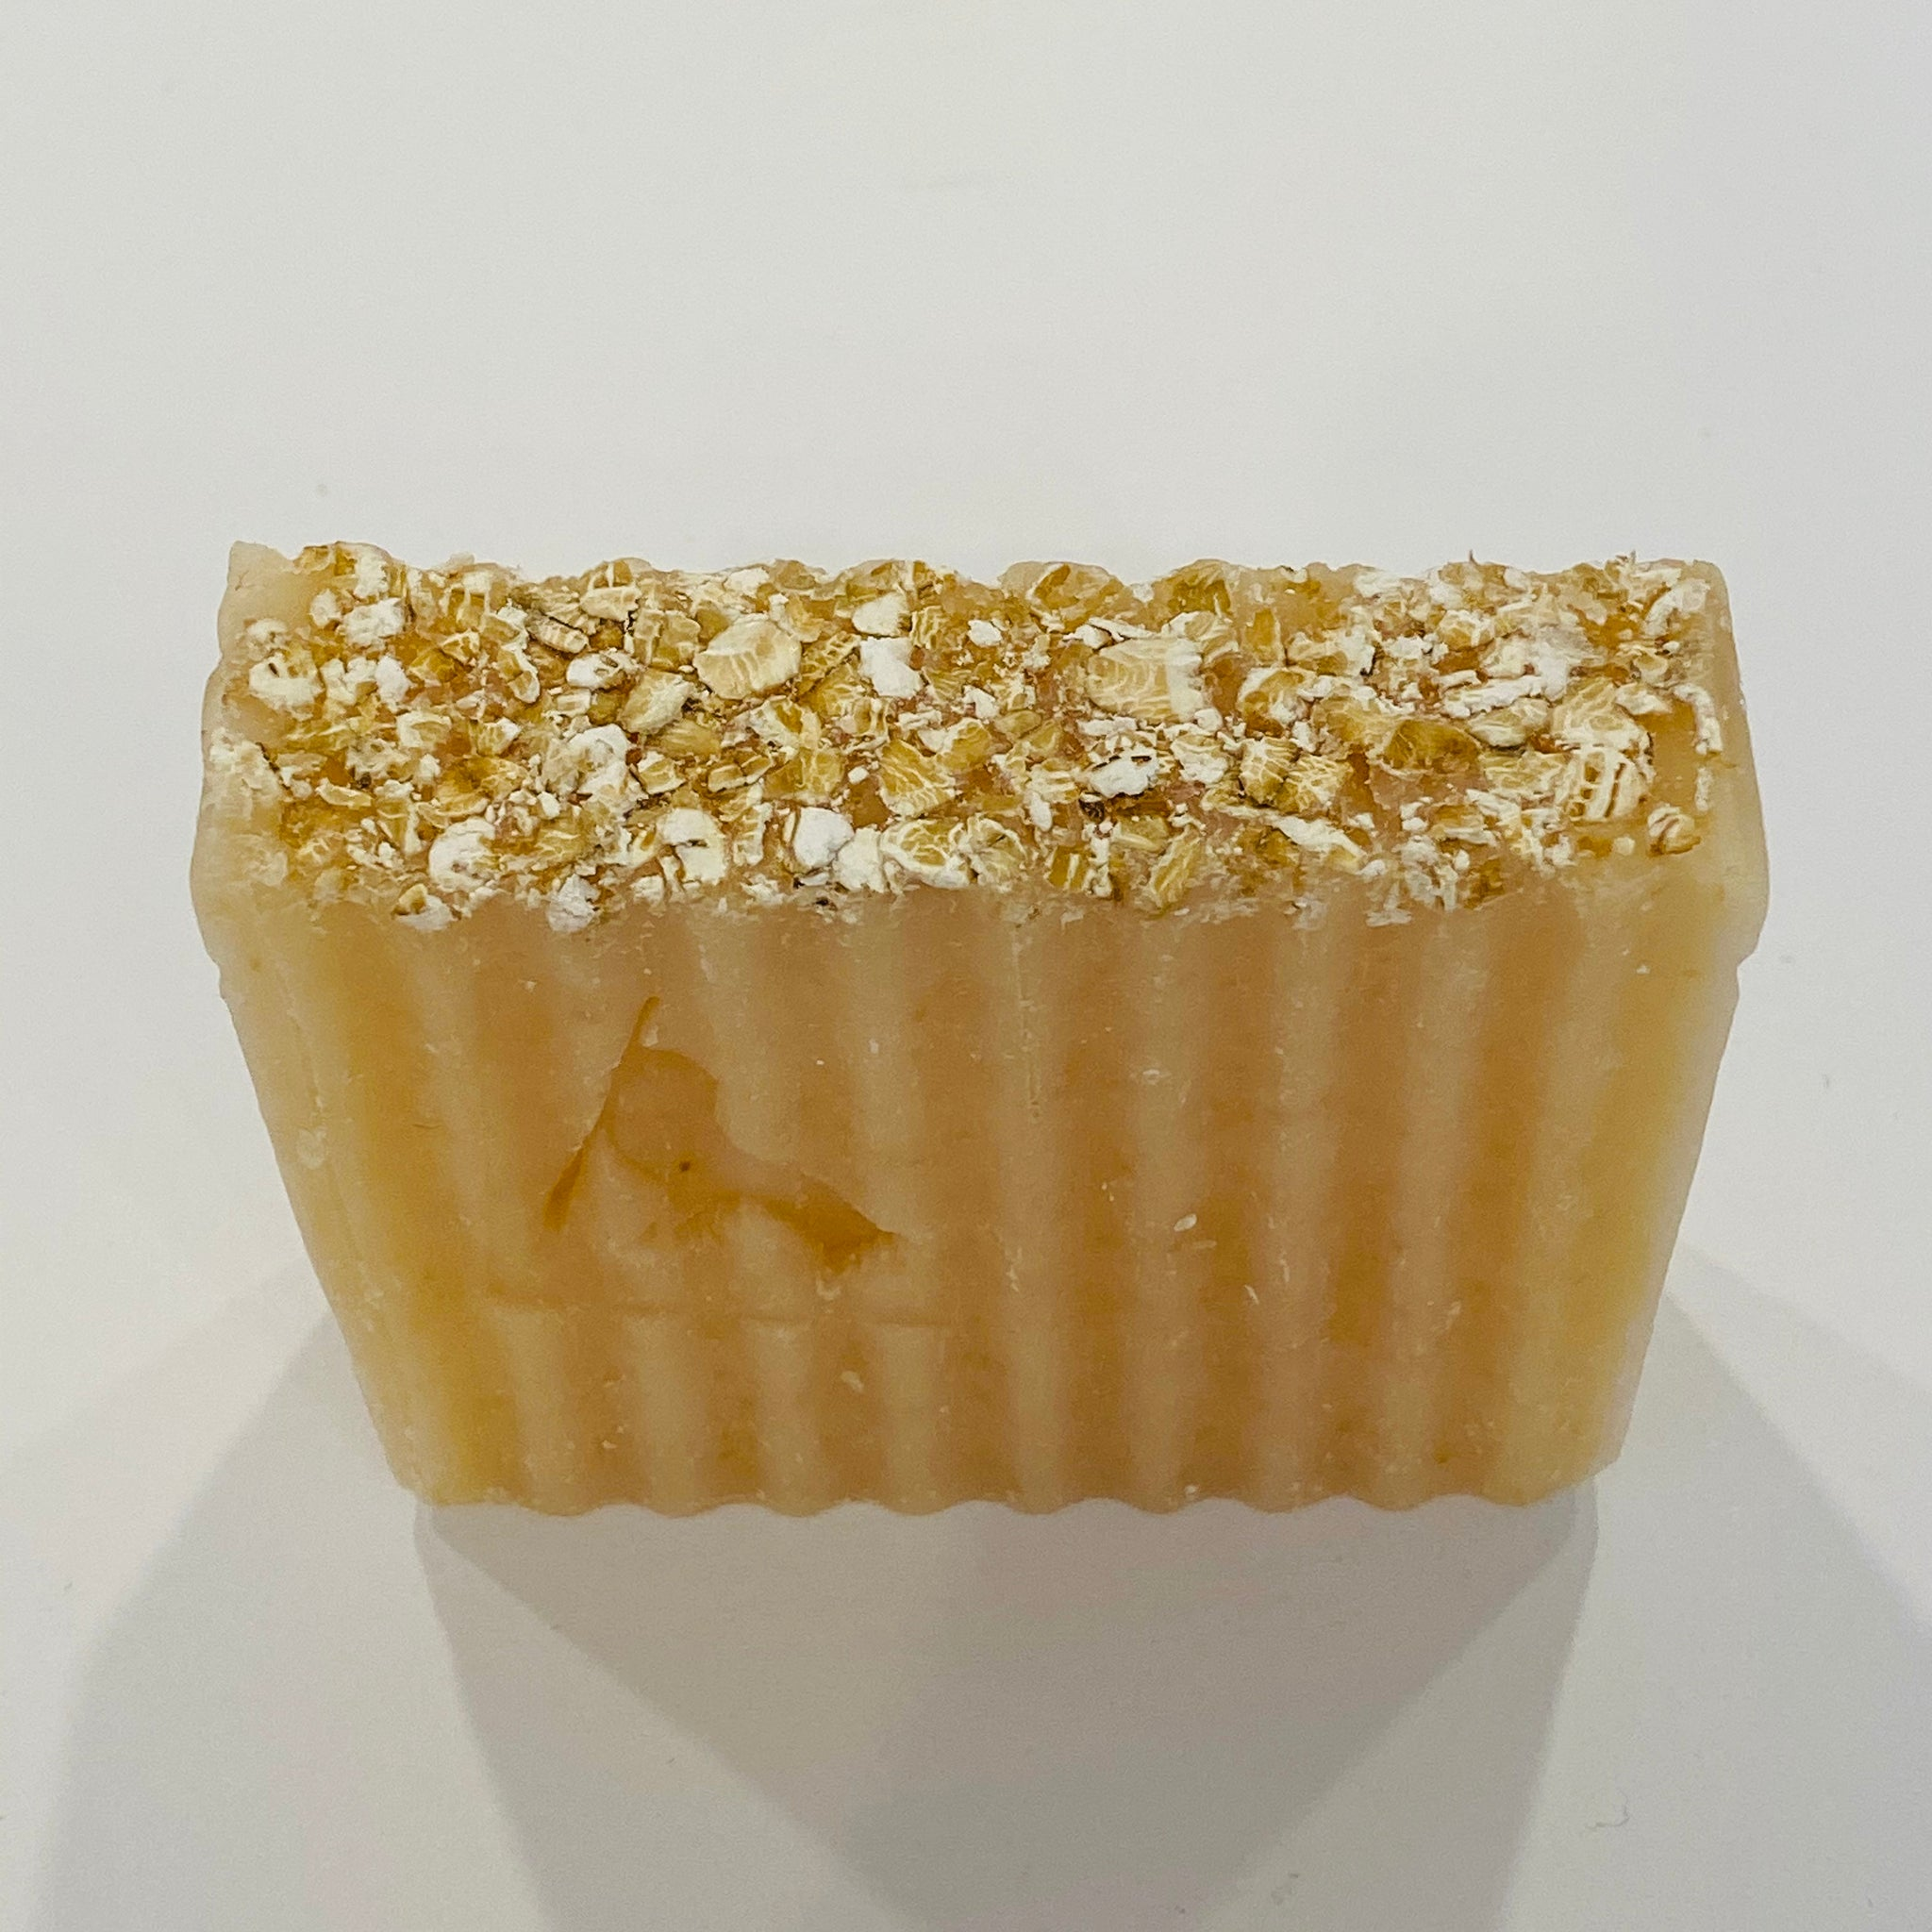 Honey Milk with Oatmeal Soap